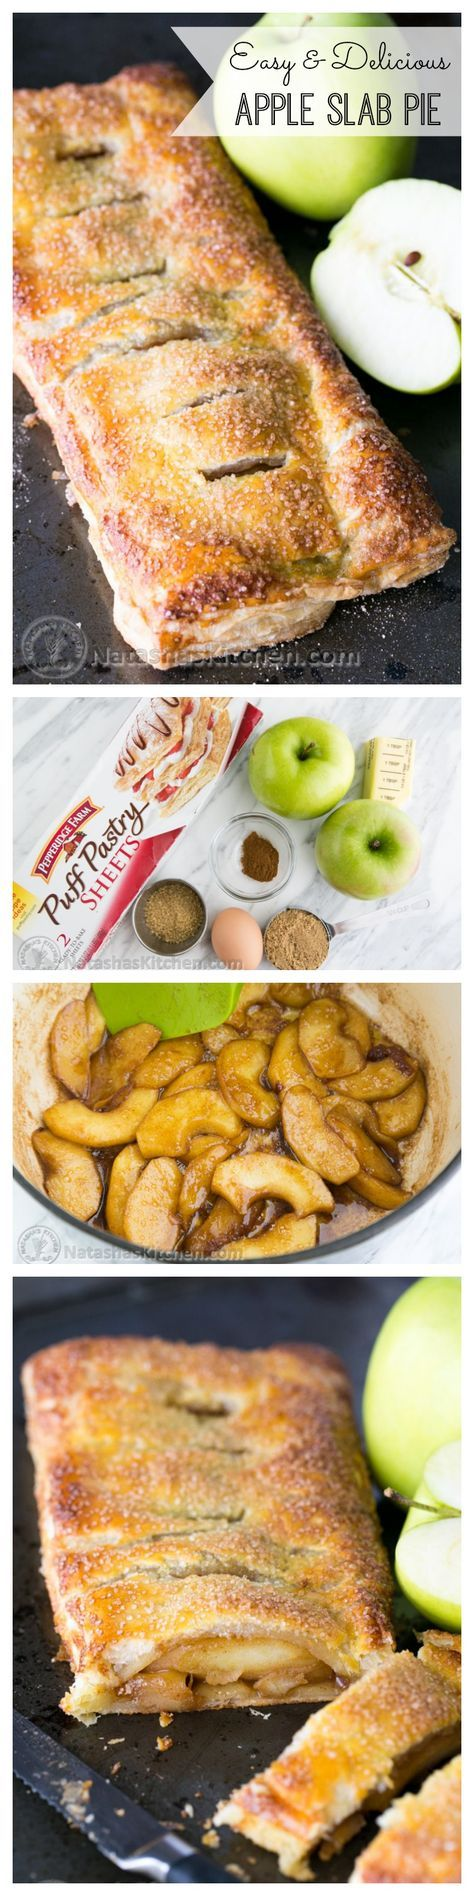 Caramelized apples wrapped in flaky puff pastry dough. So EASY and delicious!